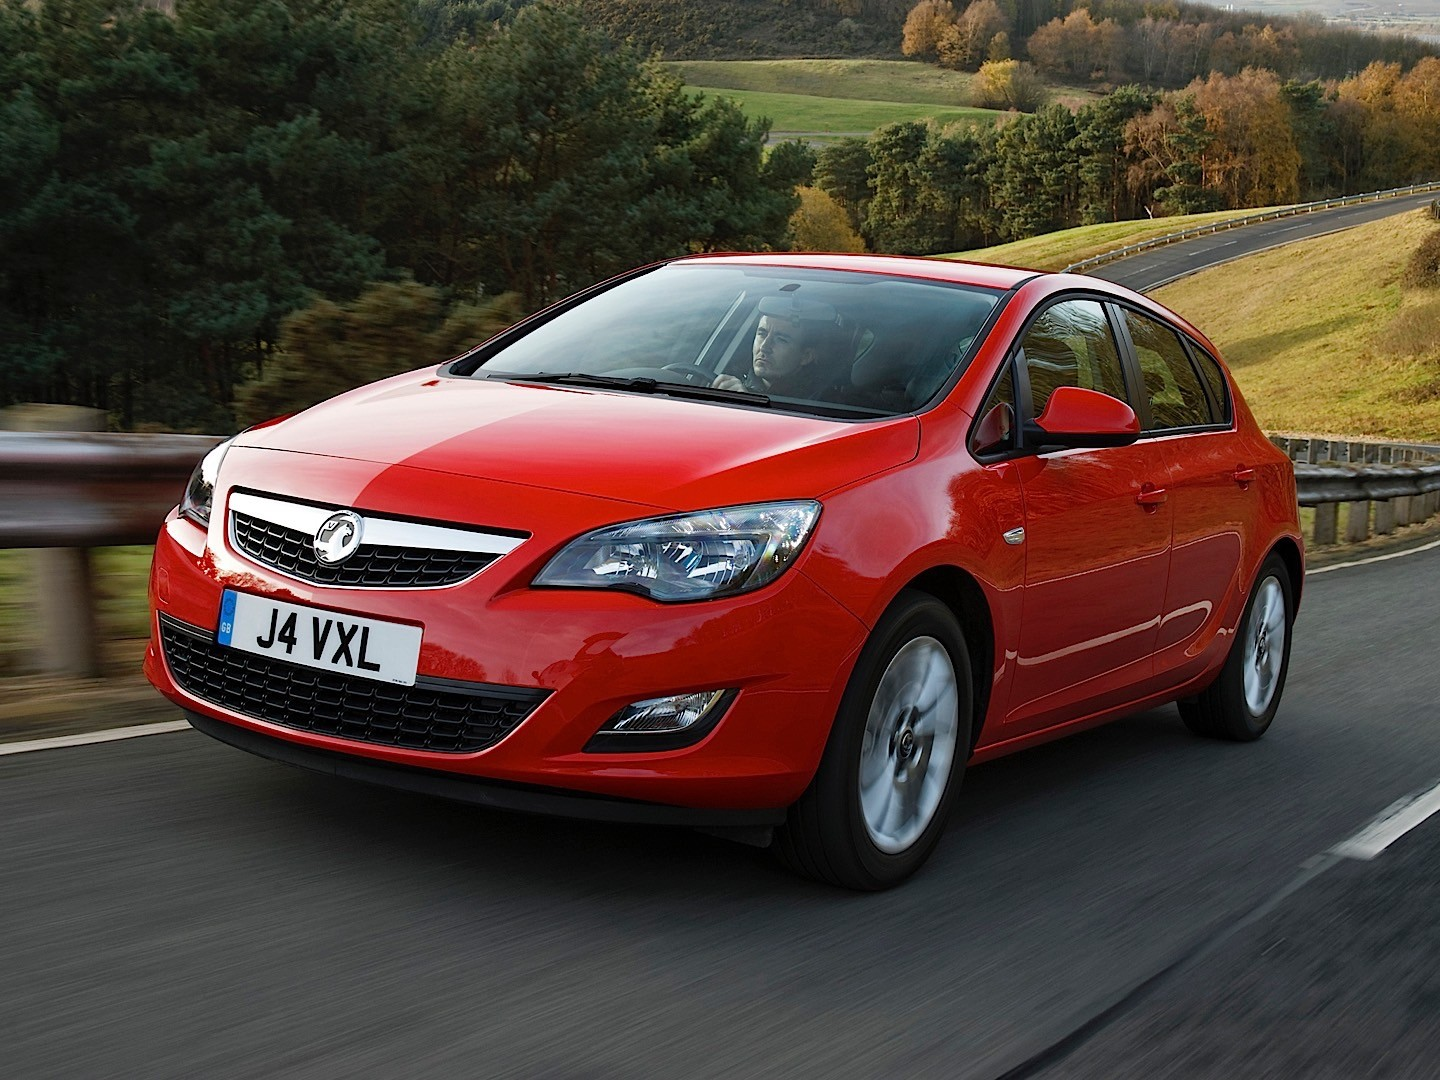 Adam S Is A Diluted Opc From Opel Vauxhall Live Photos as well Maxresdefault further Chevrolet Code R And Tru S Affordable Coupe Concepts Photo Gallery together with Opel Gt besides Pontiac Solstice Coupe. on 1 4 ecotec turbo engine